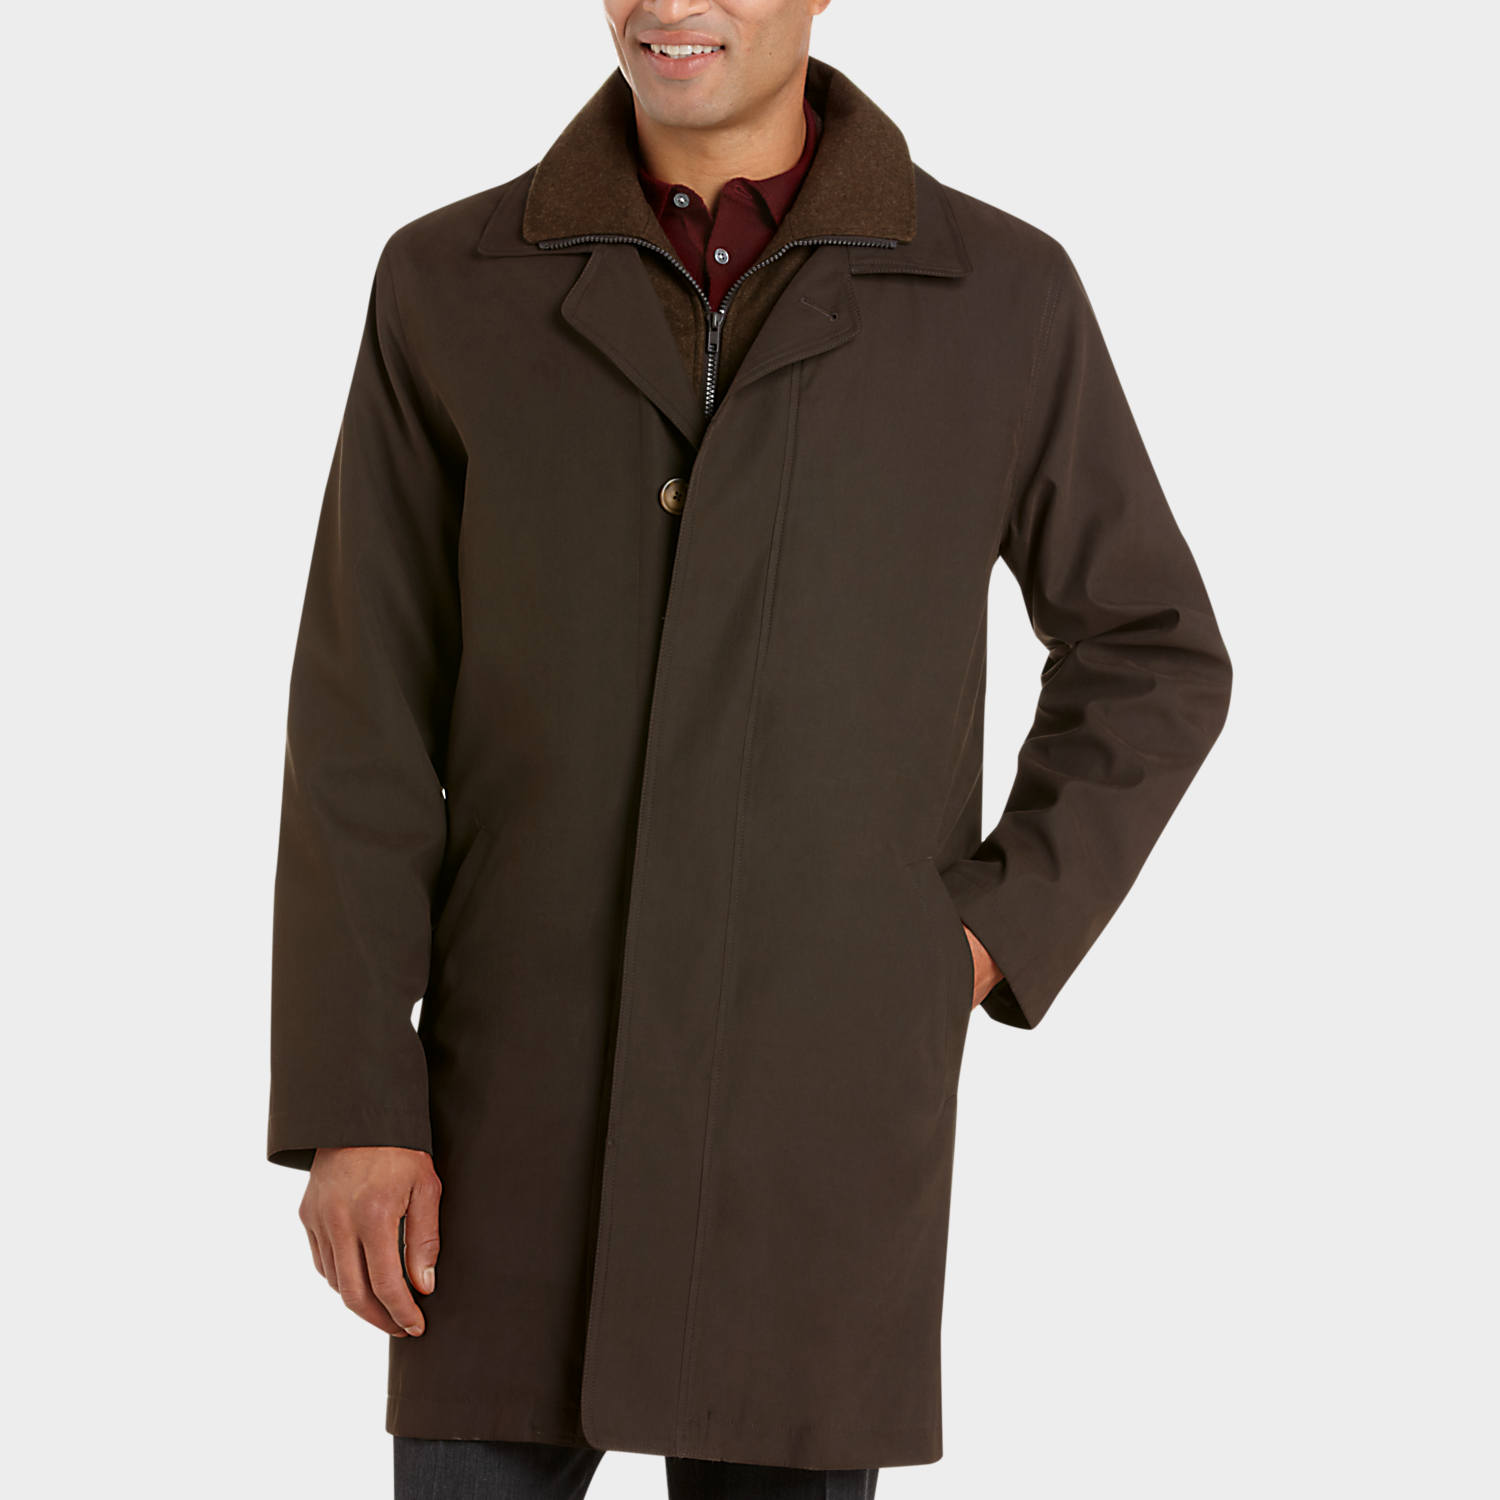 Lauren by Ralph Lauren Olive Classic Fit Raincoat - Men's ...